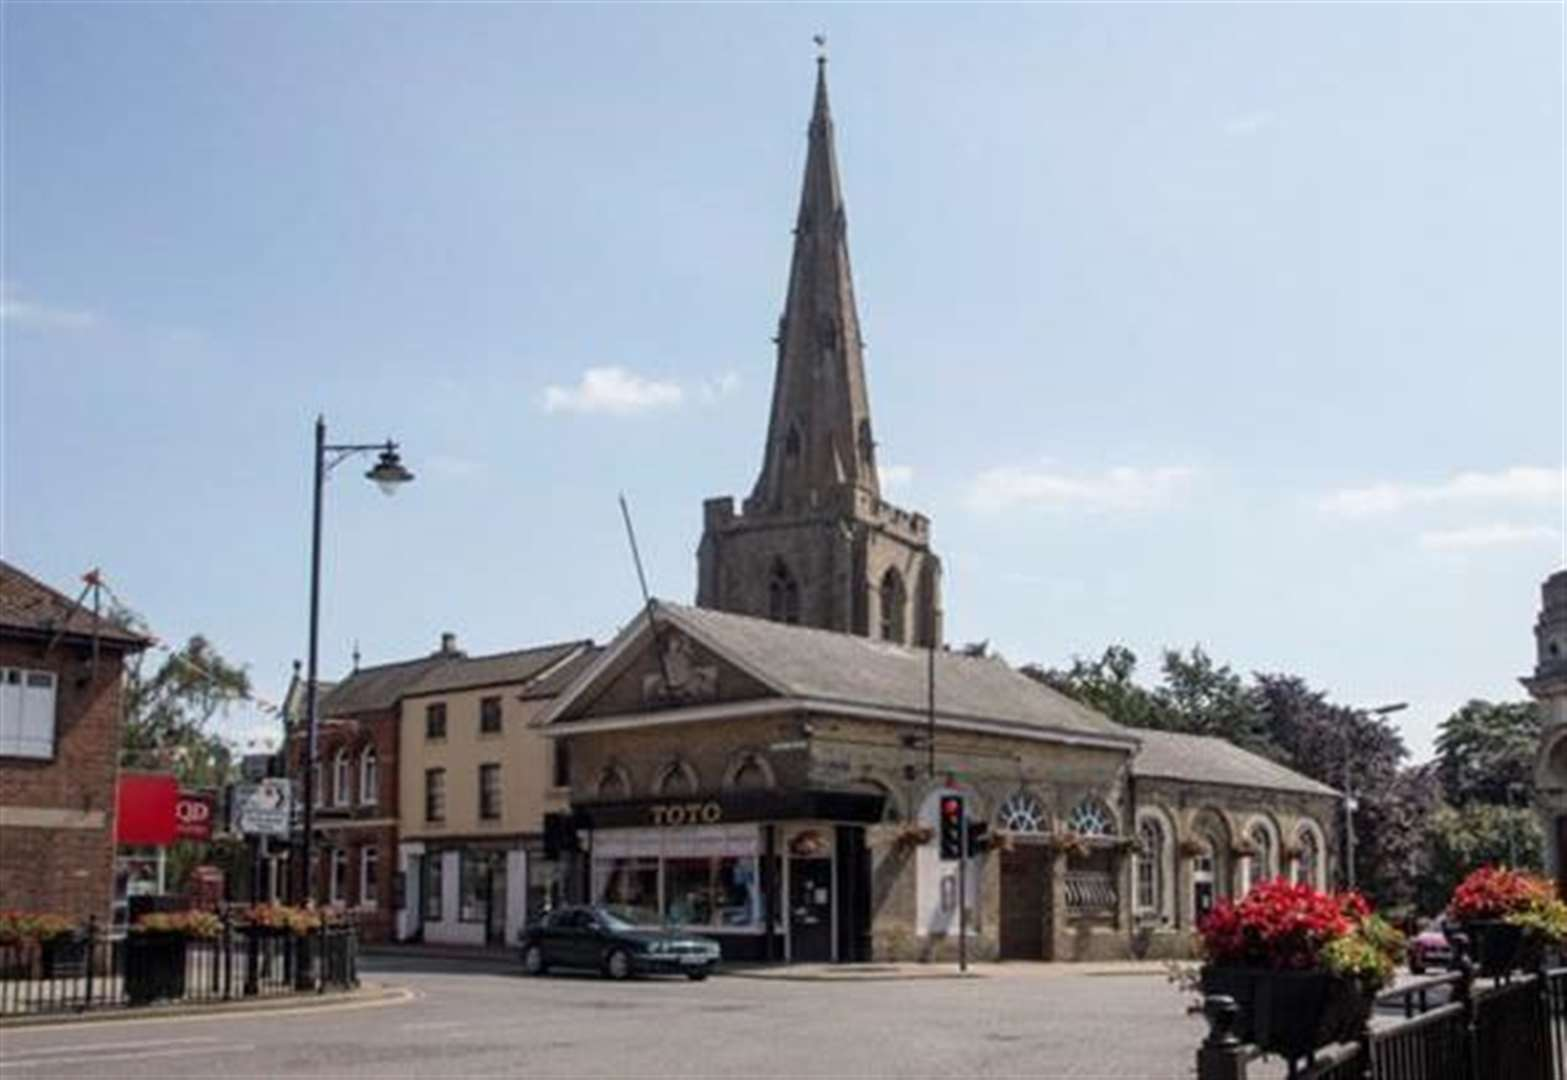 £500k regeneration plans approved for 2 town centres